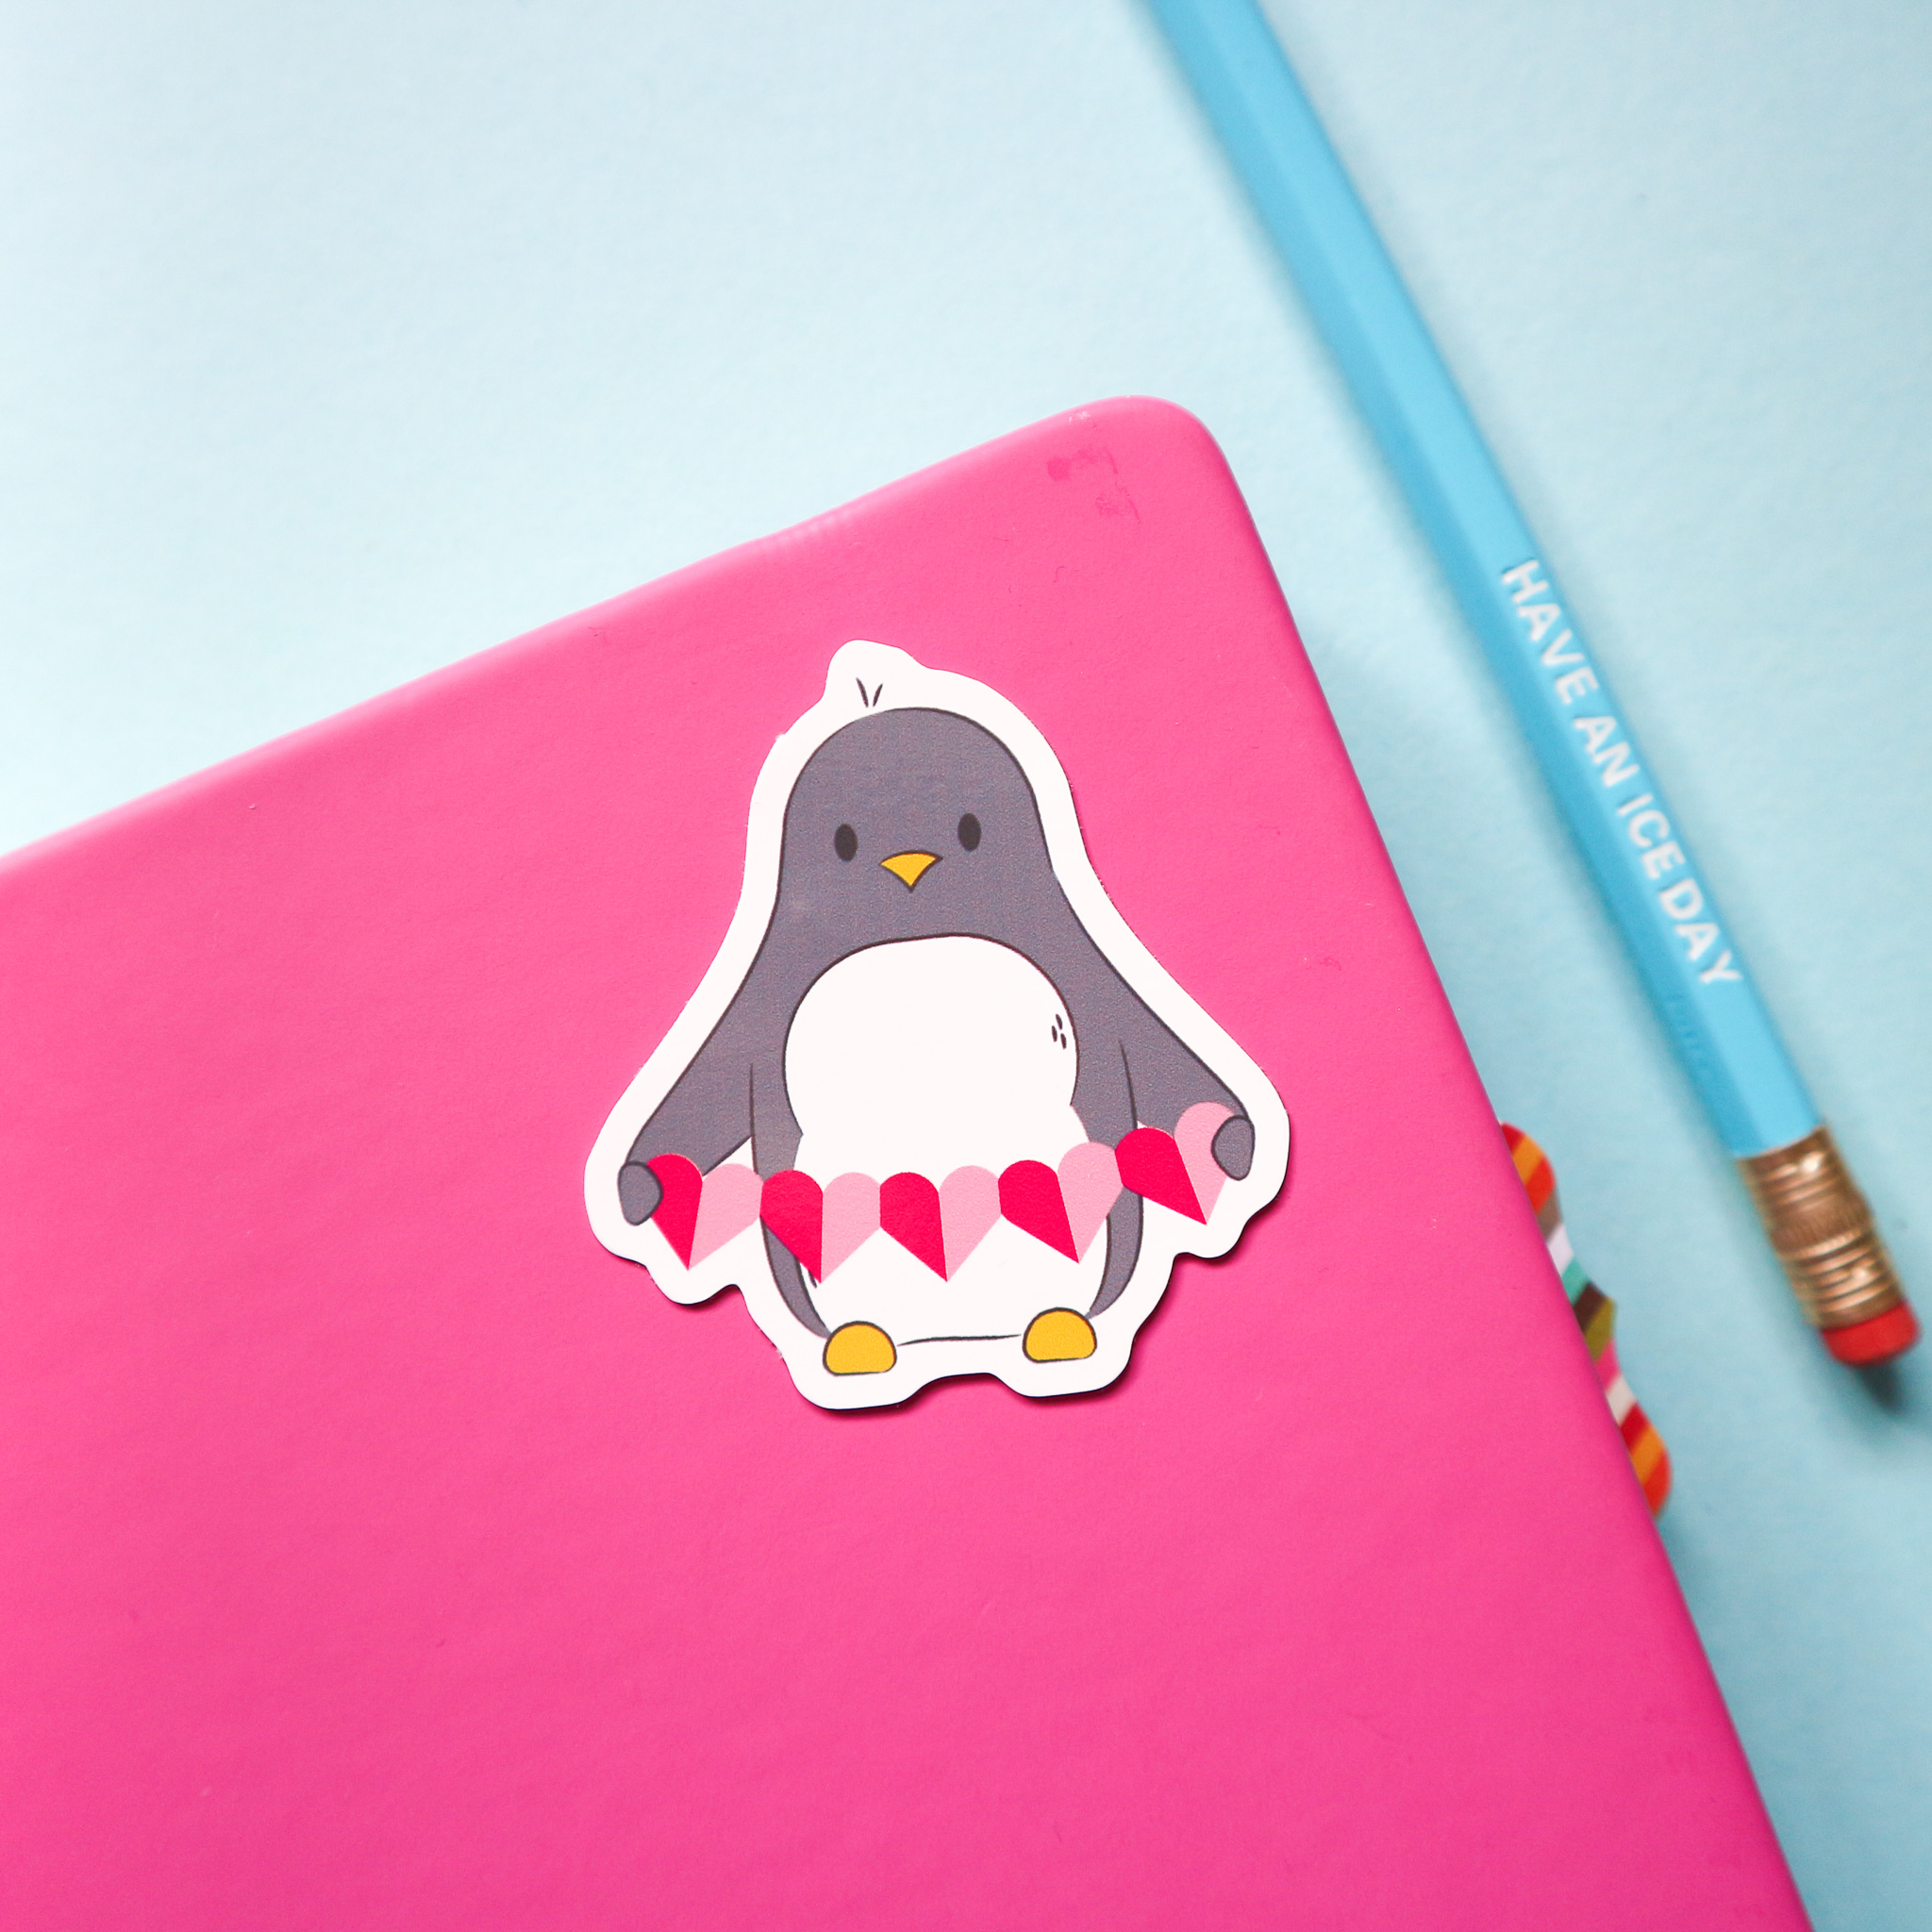 Penguin with Heart Garland Sticker by SianShrimpDesign